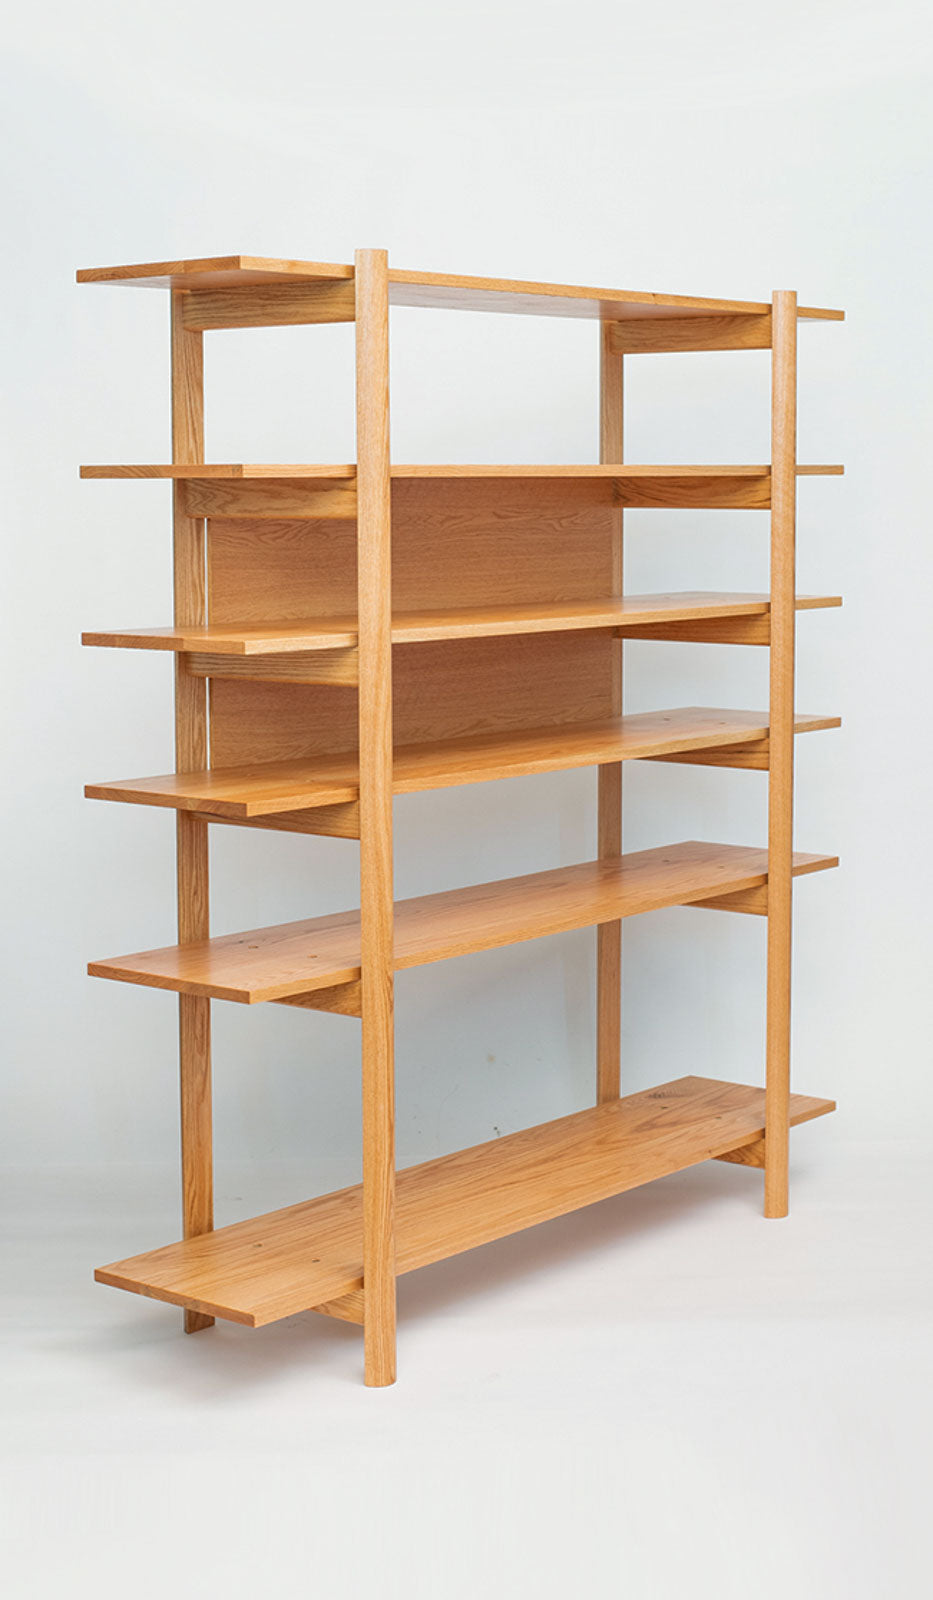 De Jong & Co Brower Shelving, , De Jong & Co, SPARTAN SHOP